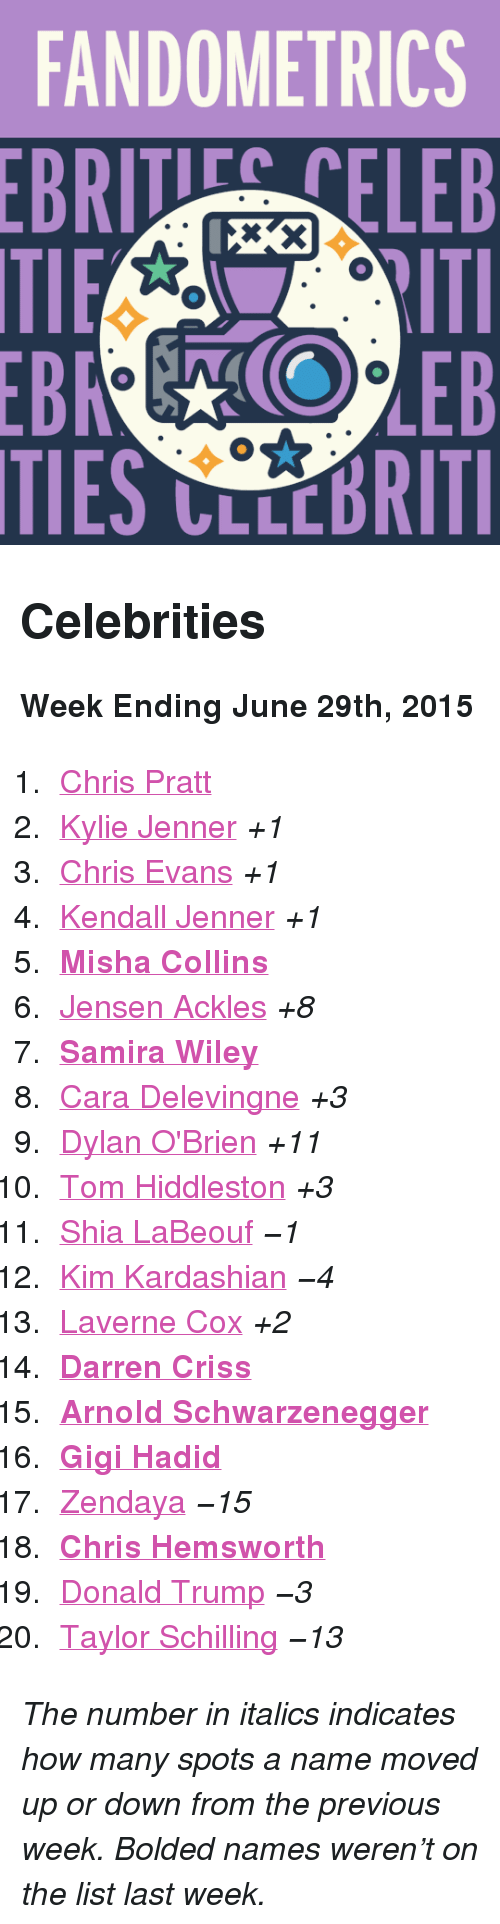 """Dylan O'Brien: FANDOMETRICS  BRTELEB  TIES CLLCBRITI <h2>Celebrities</h2><p><b>Week Ending June 29th, 2015</b></p><ol><li><a href=""""http://www.tumblr.com/search/chris%20pratt"""">Chris Pratt</a></li>  <li><a href=""""http://www.tumblr.com/search/kylie%20jenner"""">Kylie Jenner</a><i>+1</i></li>  <li><a href=""""http://www.tumblr.com/search/chris%20evans"""">Chris Evans</a><i>+1</i></li>  <li><a href=""""http://www.tumblr.com/search/kendall%20jenner"""">Kendall Jenner</a><i>+1</i></li>  <li><a href=""""http://www.tumblr.com/search/misha%20collins""""><b>Misha Collins</b></a></li>  <li><a href=""""http://www.tumblr.com/search/jensen%20ackles"""">Jensen Ackles</a><i>+8</i></li>  <li><a href=""""http://www.tumblr.com/search/samira%20wiley""""><b>Samira Wiley</b></a></li>  <li><a href=""""http://www.tumblr.com/search/cara%20delevingne"""">Cara Delevingne</a><i>+3</i></li>  <li><a href=""""http://www.tumblr.com/search/dylan%20o'brien"""">Dylan O'Brien</a><i>+11</i></li>  <li><a href=""""http://www.tumblr.com/search/tom%20hiddleston"""">Tom Hiddleston</a><i>+3</i></li>  <li><a href=""""http://www.tumblr.com/search/shia%20labeouf"""">Shia LaBeouf</a><i>−1</i></li>  <li><a href=""""http://www.tumblr.com/search/kim%20kardashian"""">Kim Kardashian</a><i>−4</i></li>  <li><a href=""""http://www.tumblr.com/search/laverne%20cox"""">Laverne Cox</a><i>+2</i></li>  <li><a href=""""http://www.tumblr.com/search/darren%20criss""""><b>Darren Criss</b></a></li>  <li><a href=""""http://www.tumblr.com/search/arnold%20schwarzenegger""""><b>Arnold Schwarzenegger</b></a></li>  <li><a href=""""http://www.tumblr.com/search/gigi%20hadid""""><b>Gigi Hadid</b></a></li>  <li><a href=""""http://www.tumblr.com/search/zendaya"""">Zendaya</a><i>−15</i></li>  <li><a href=""""http://www.tumblr.com/search/chris%20hemsworth""""><b>Chris Hemsworth</b></a></li>  <li><a href=""""http://www.tumblr.com/search/donald%20trump"""">Donald Trump</a><i>−3</i></li>  <li><a href=""""http://www.tumblr.com/search/taylor%20schilling"""">Taylor Schilling</a><i>−13</i></li></ol><p><i>The number in italics indicates how many spots a name mov"""